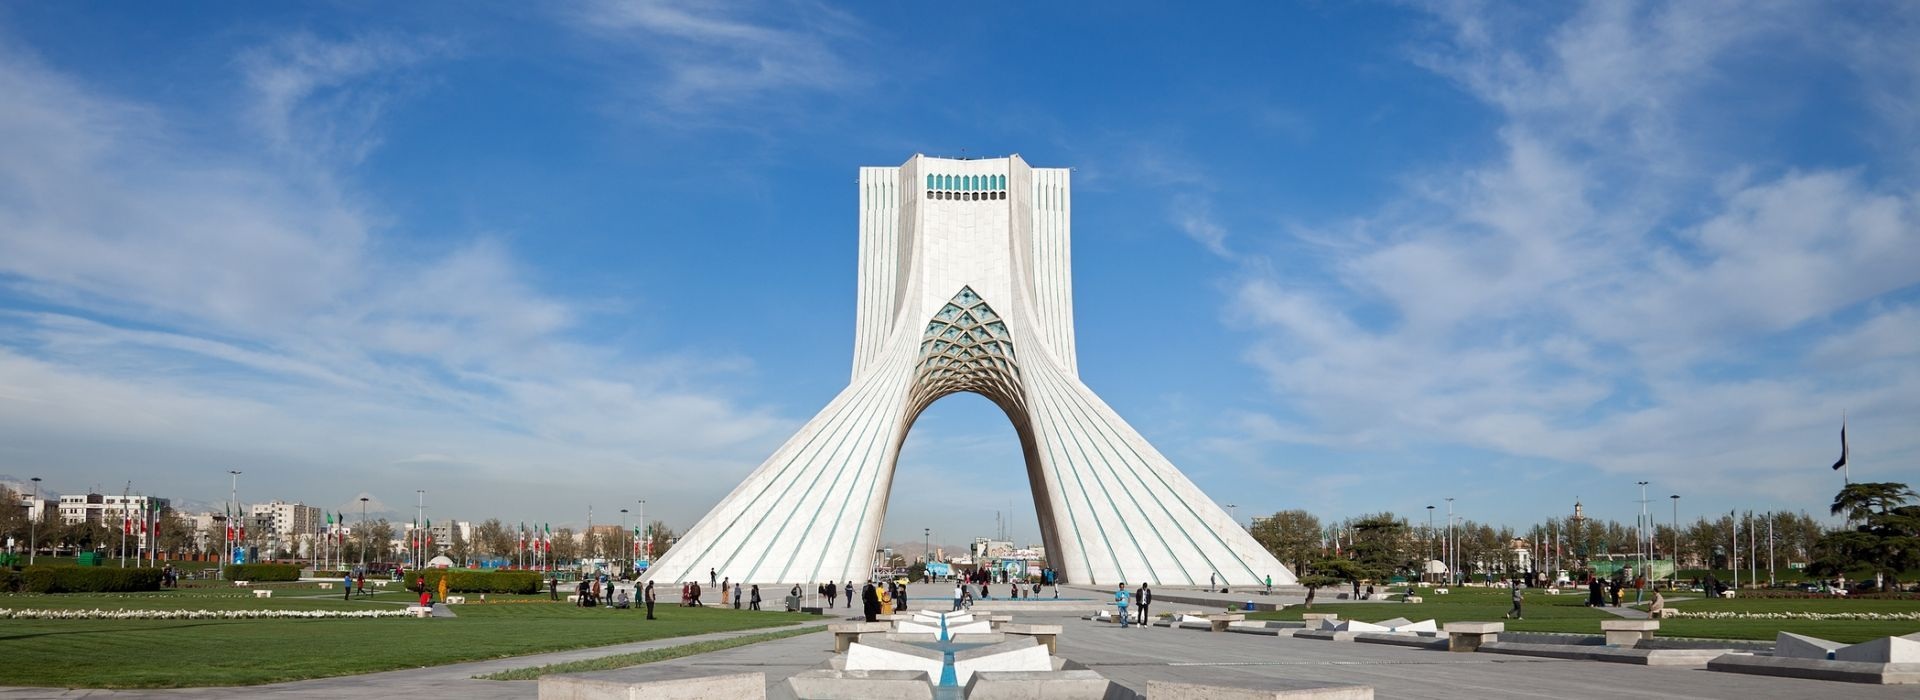 Art and architecture Tours in Iran